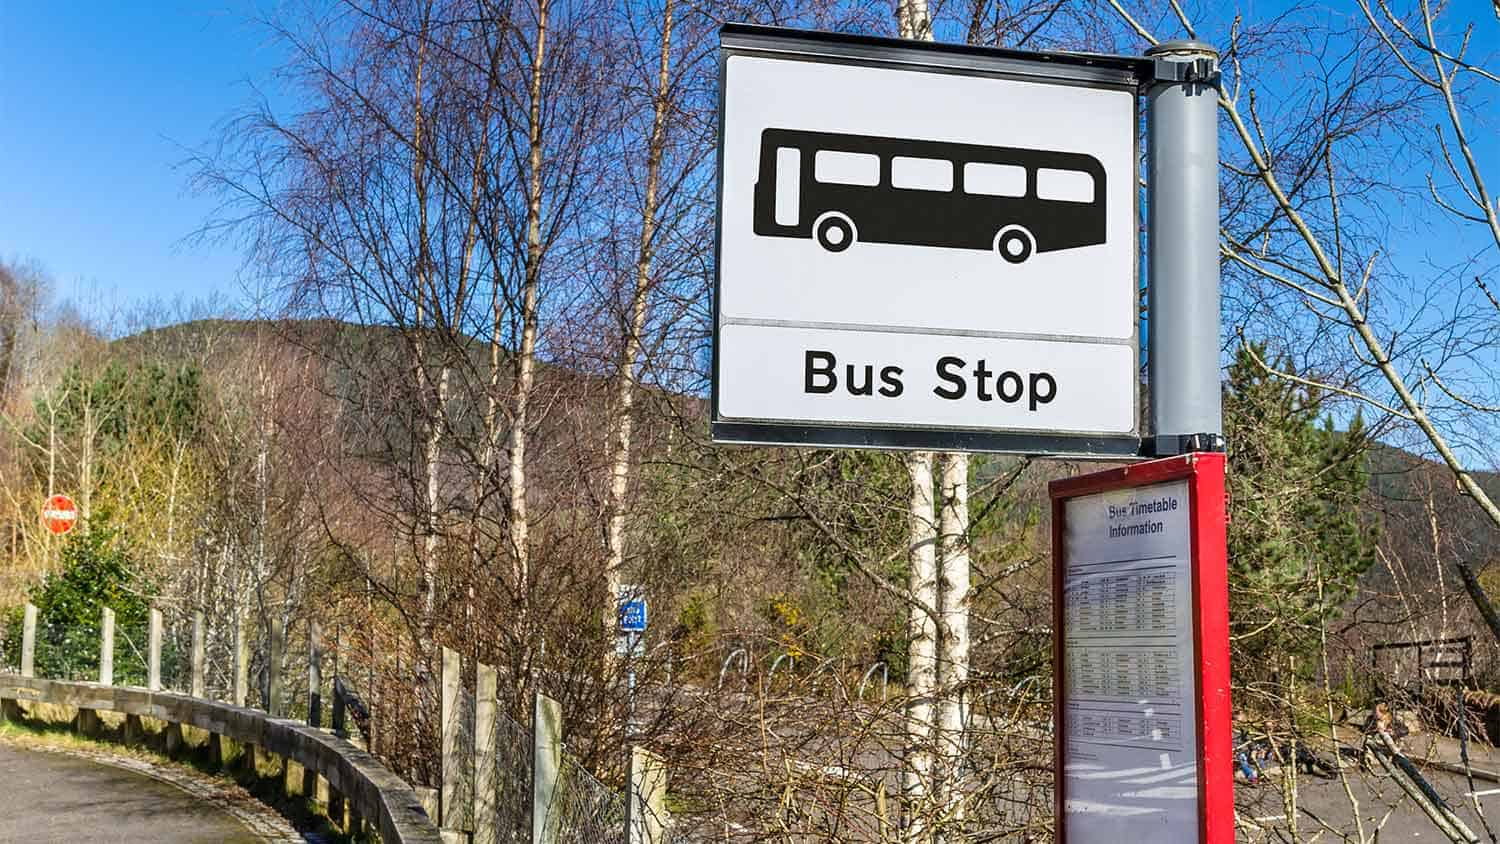 A rural bus stop sign